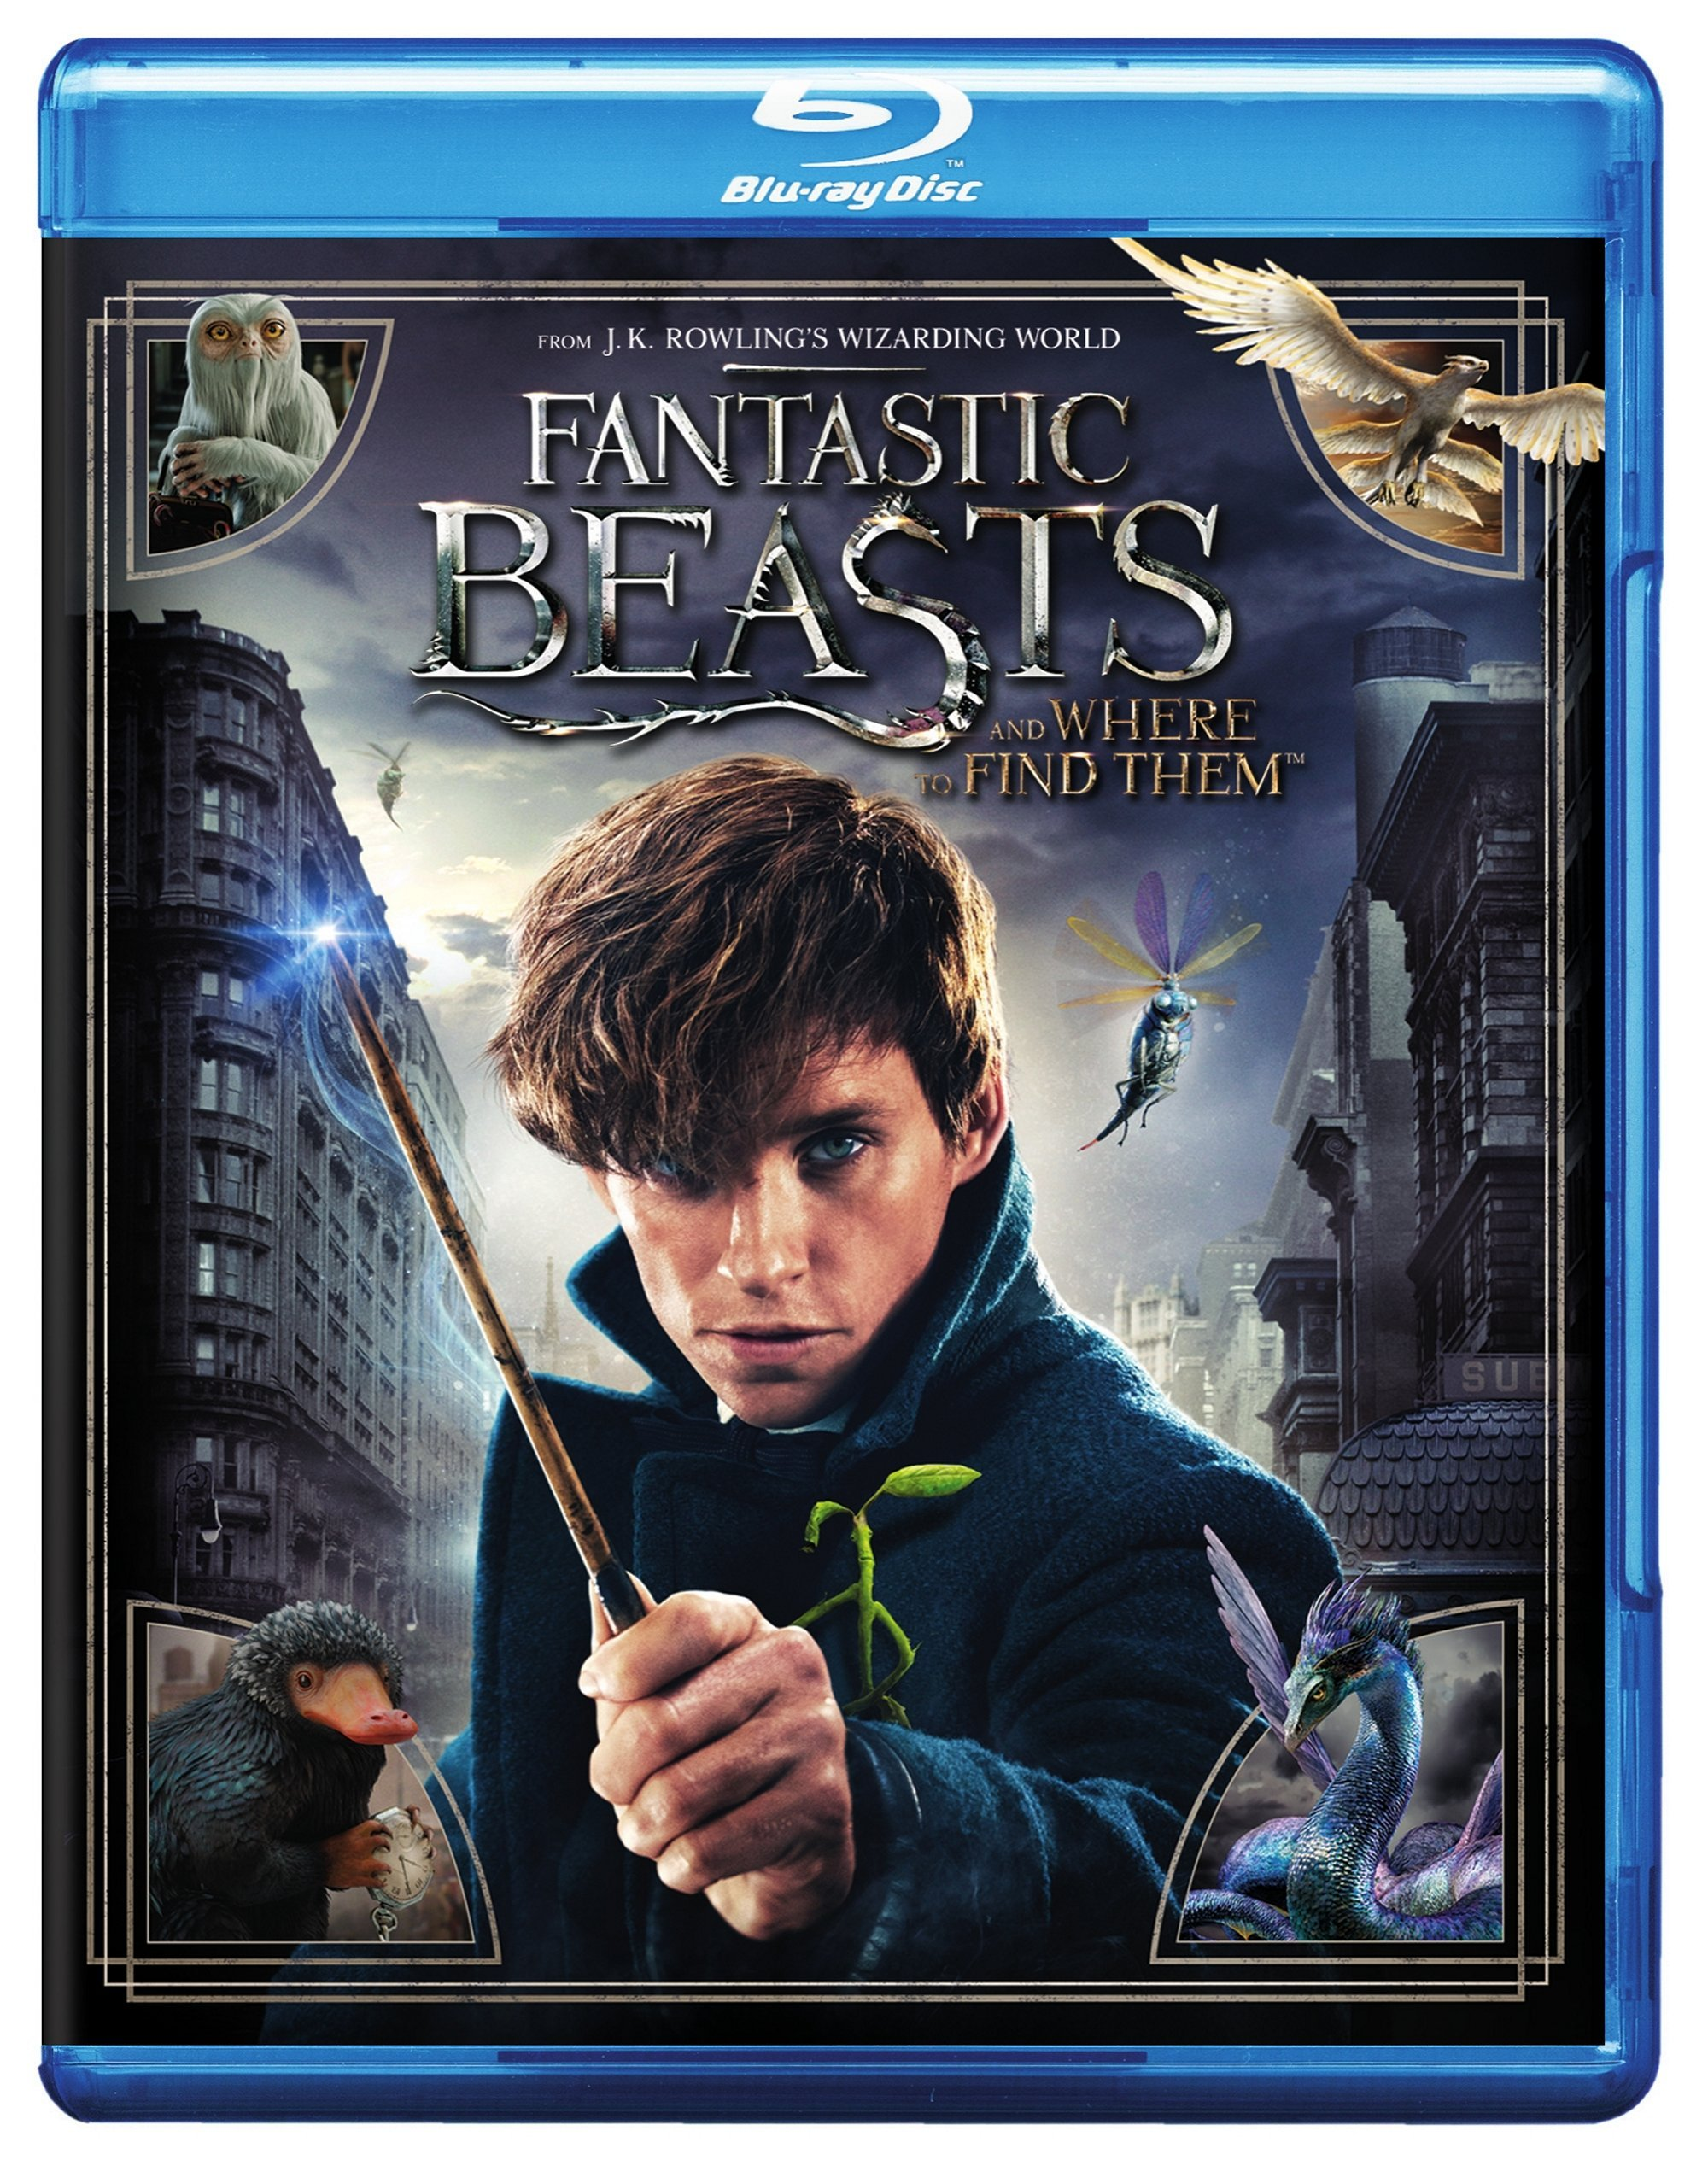 Blu-ray : Fantastic Beasts and Where to Find Them (With DVD, Ultraviolet Digital Copy, Eco Amaray Case)